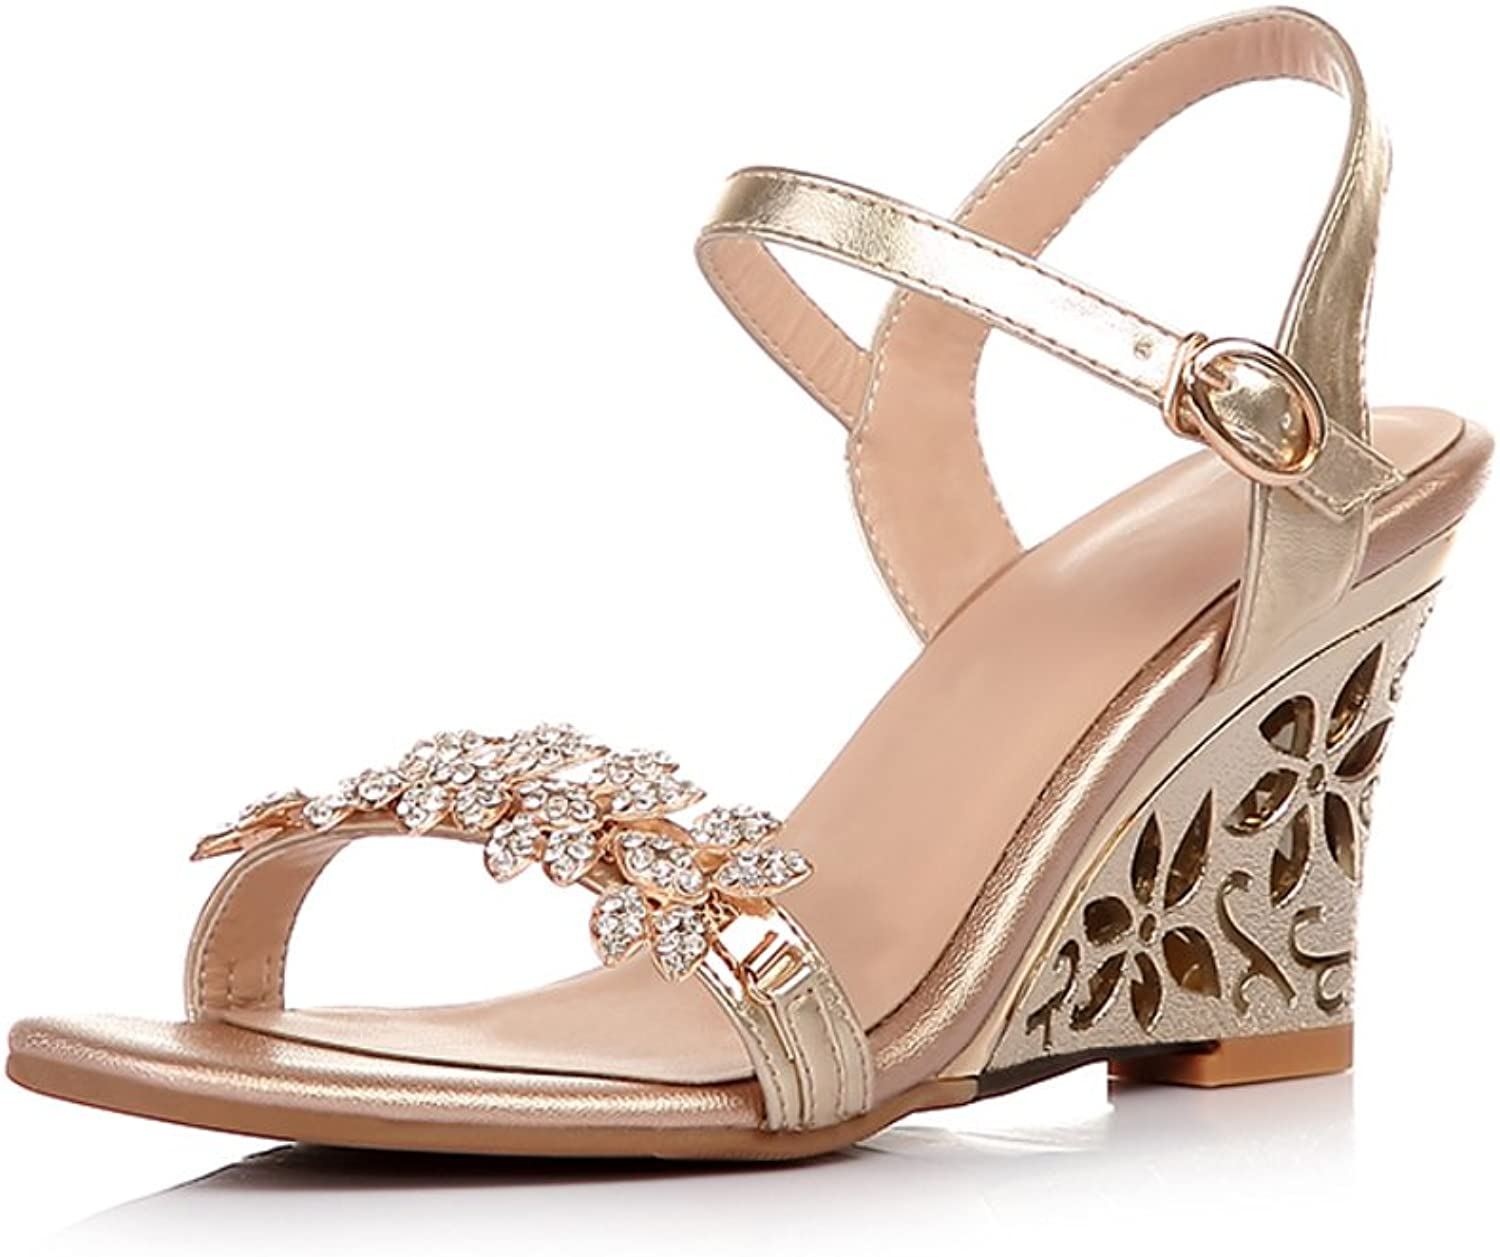 RHFDVGDS Leather summer sandals Wedges high heels shoes skin rhinestone Sandals